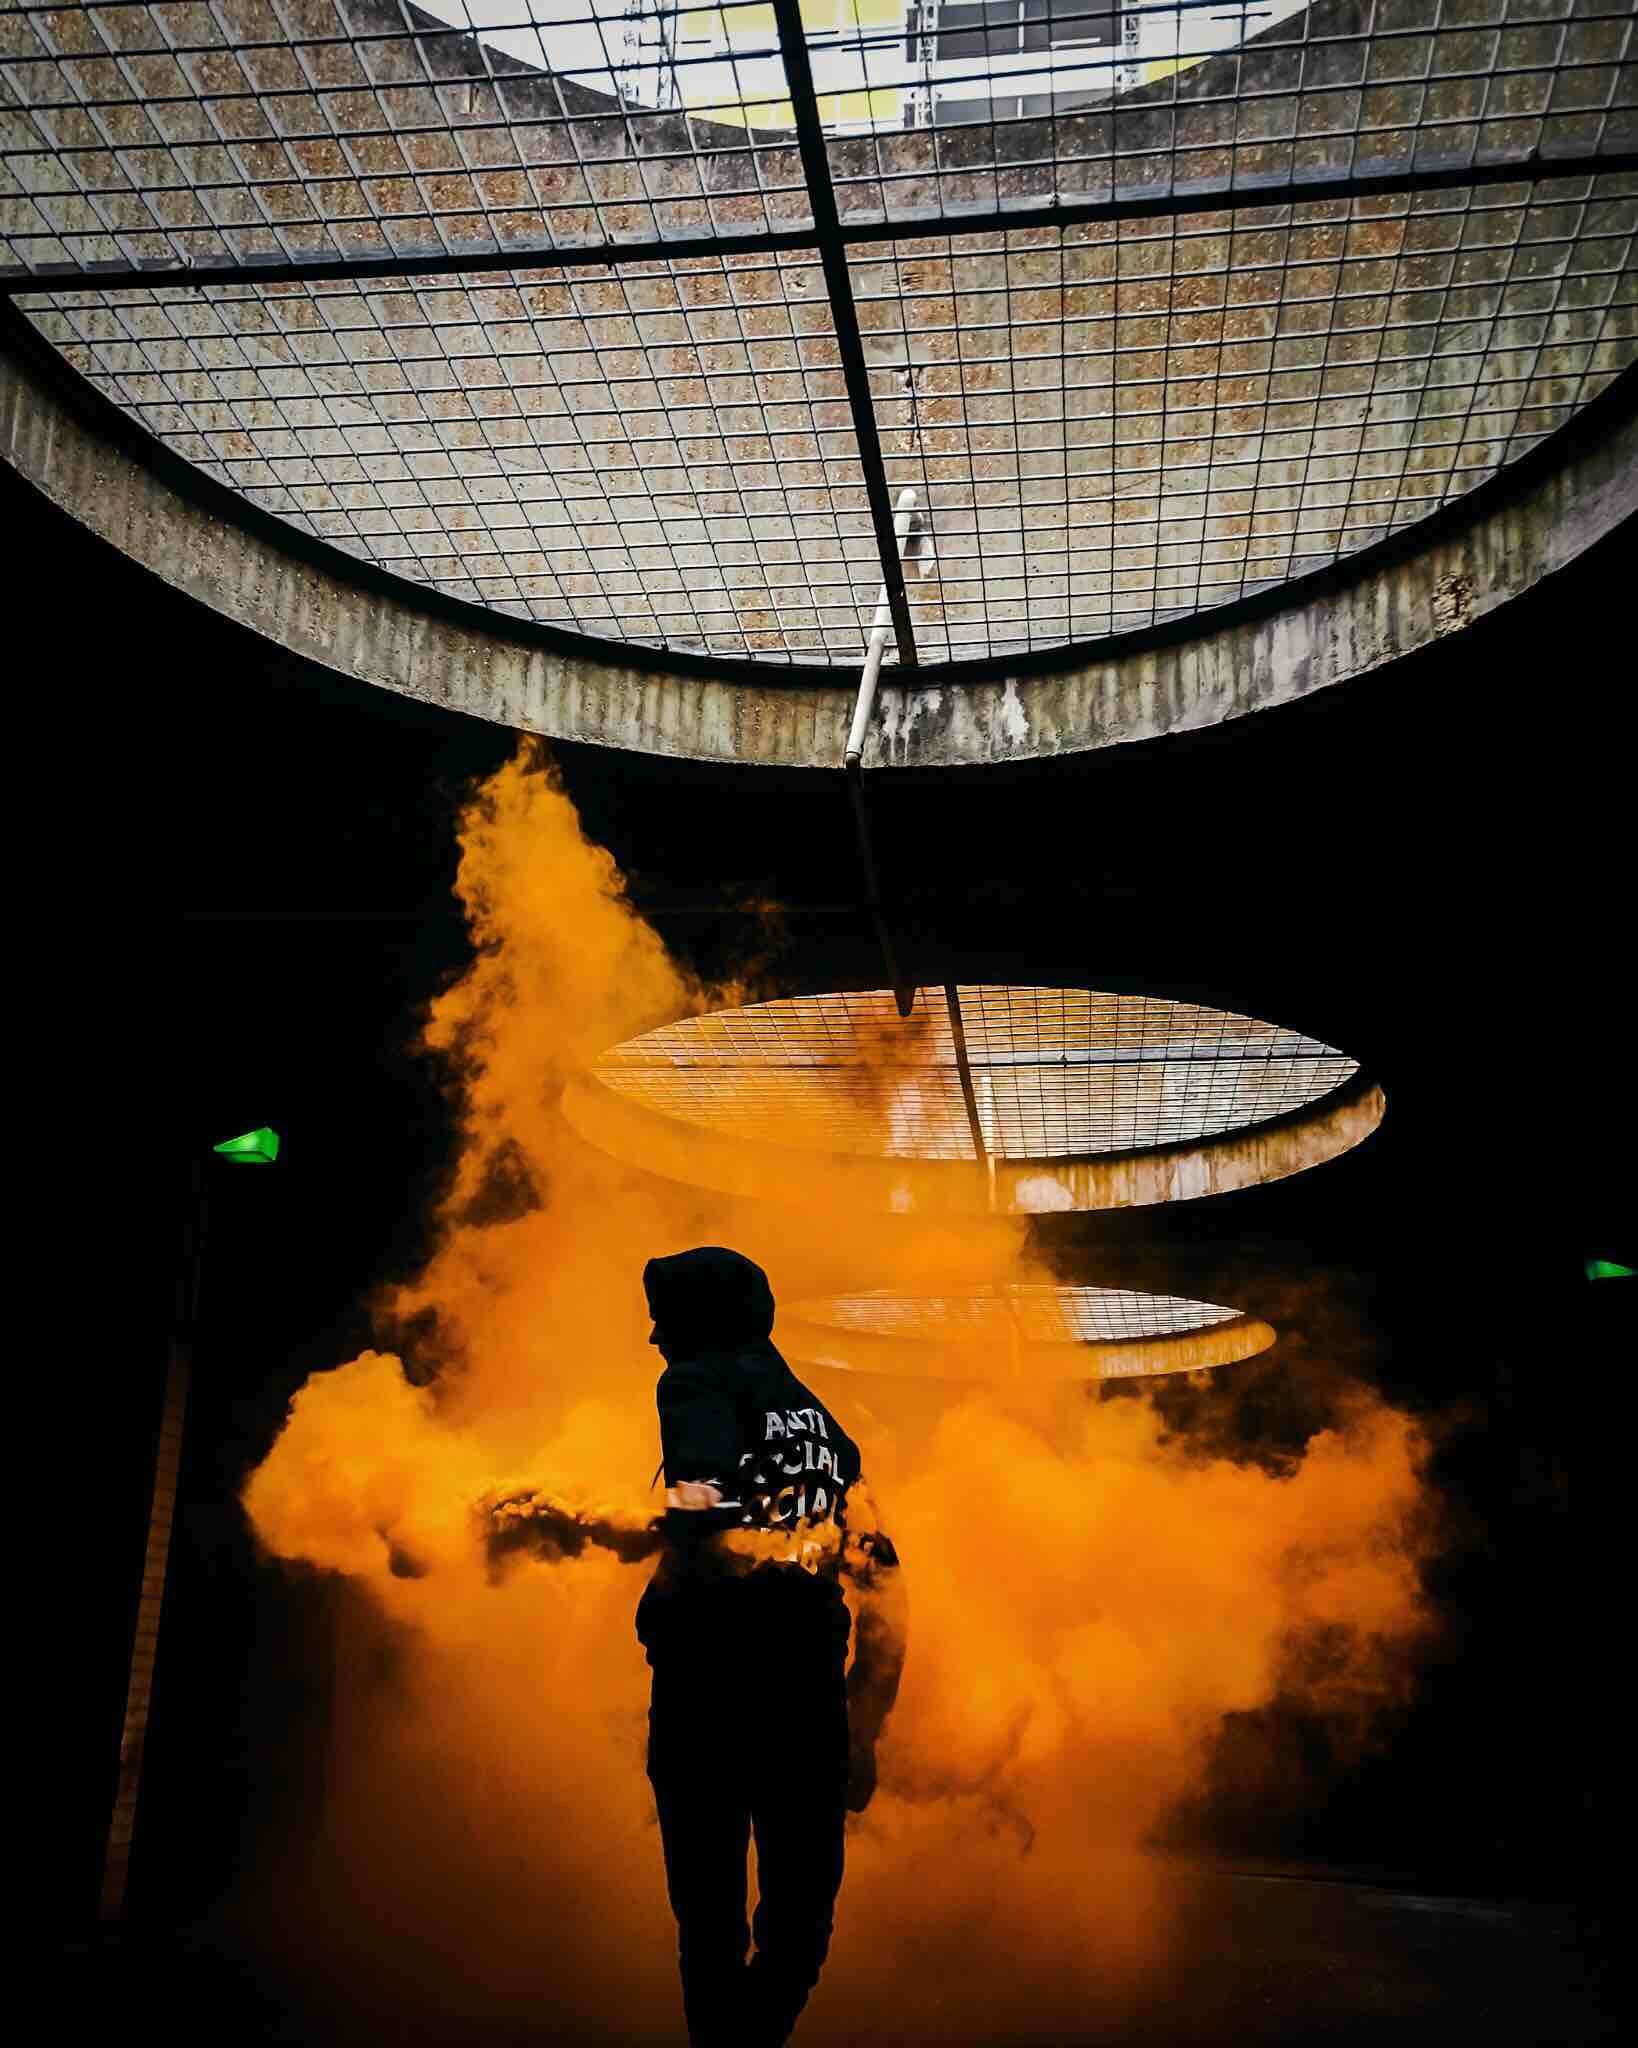 Silhouette of person in a hood running through orange smoke underground